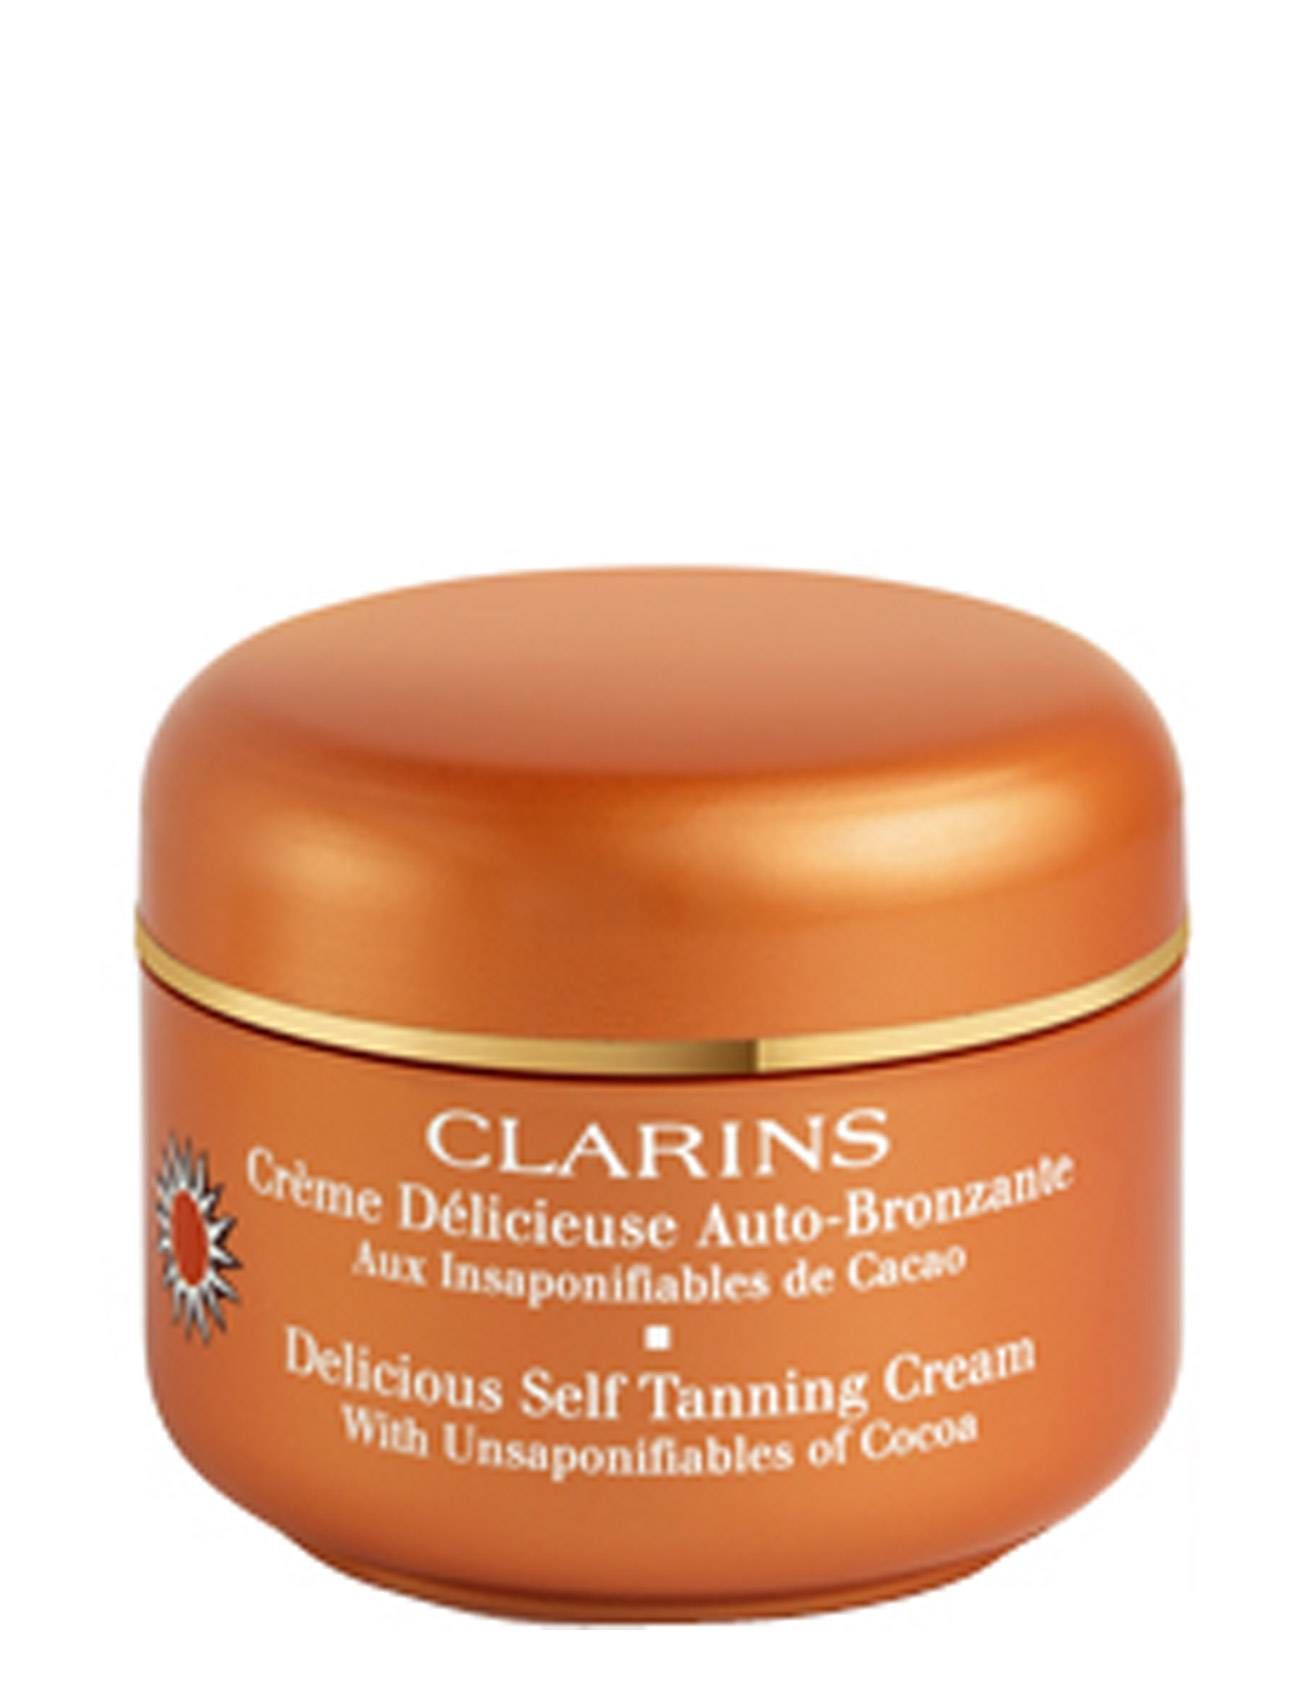 Clarins Self Tanners Delicious Self